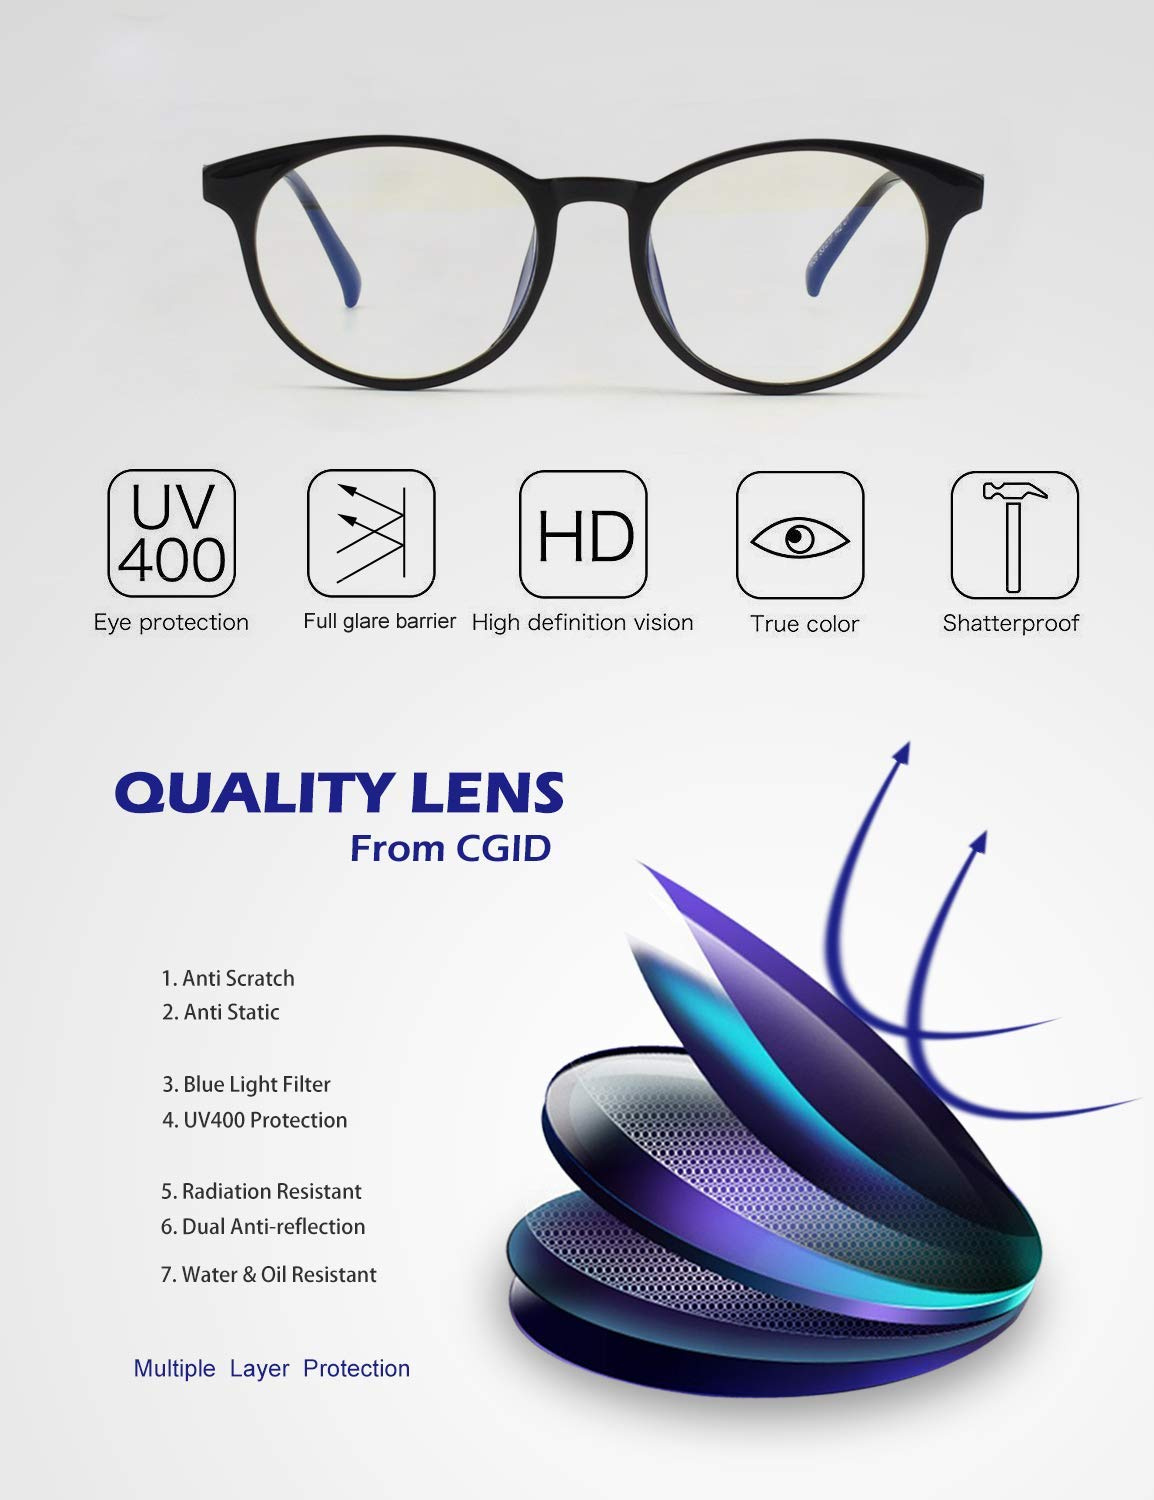 421ef6a34a1 Anti Blue Light Glasses Health  Buy Online from Fishpond.co.nz